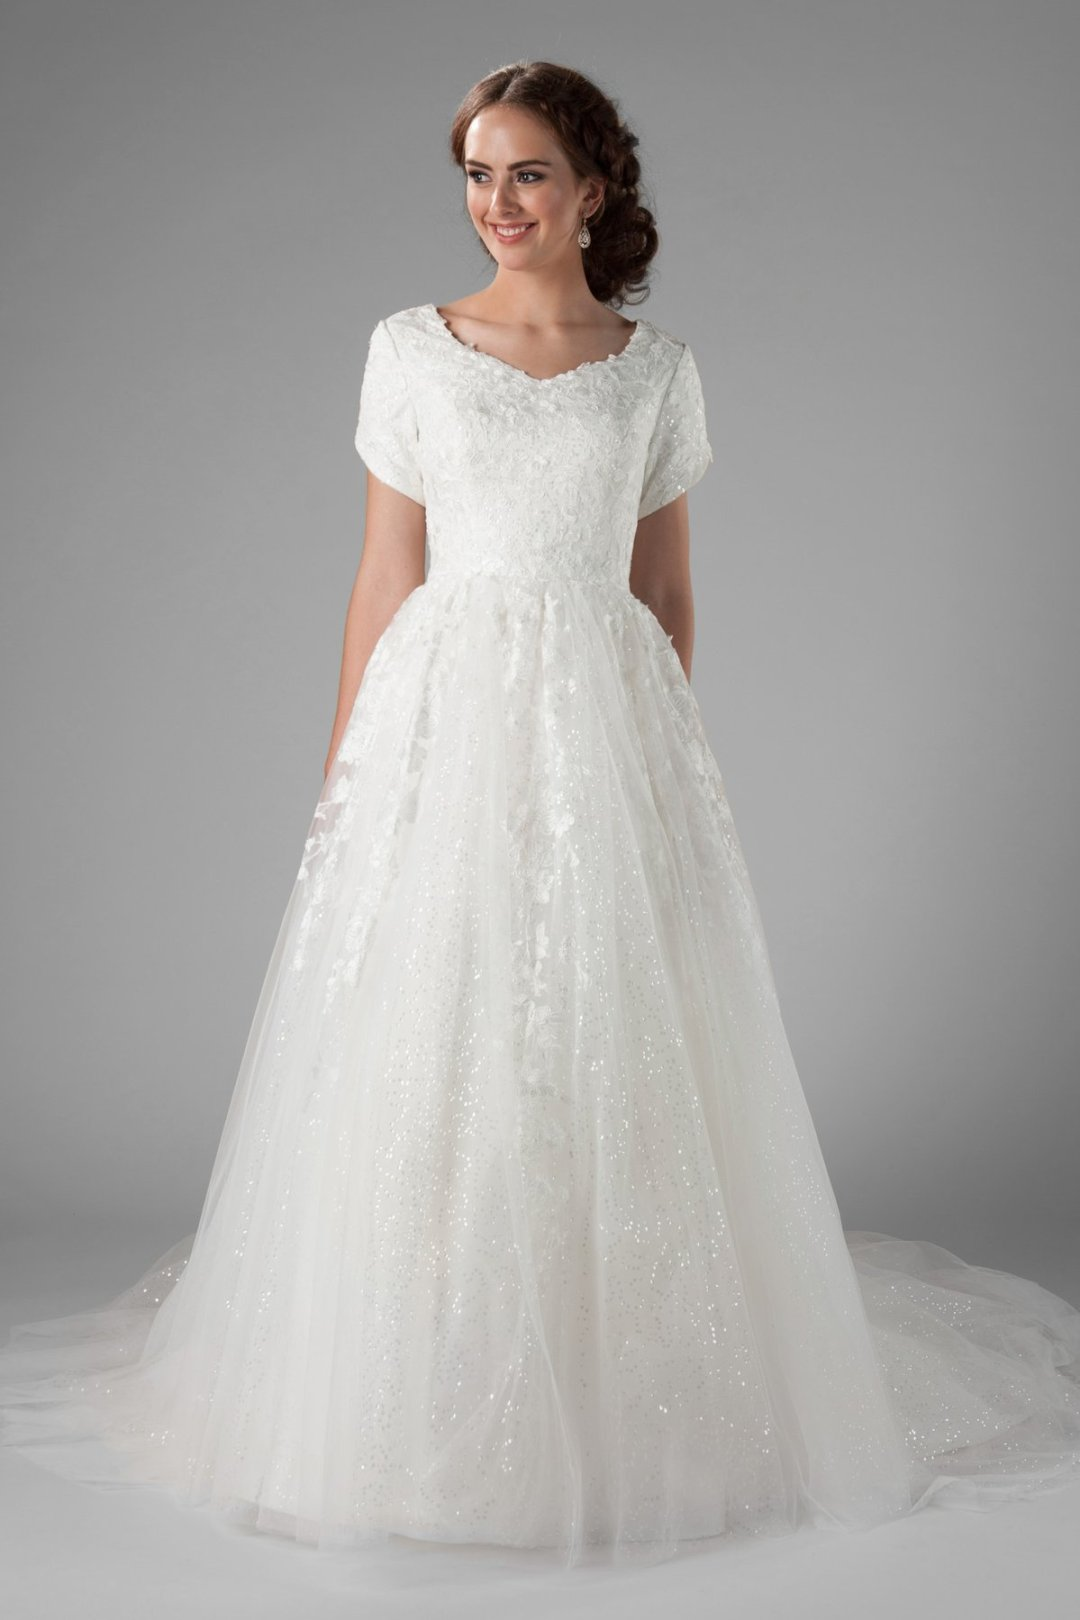 25 Modest Ball Gown Wedding Dresses - 2